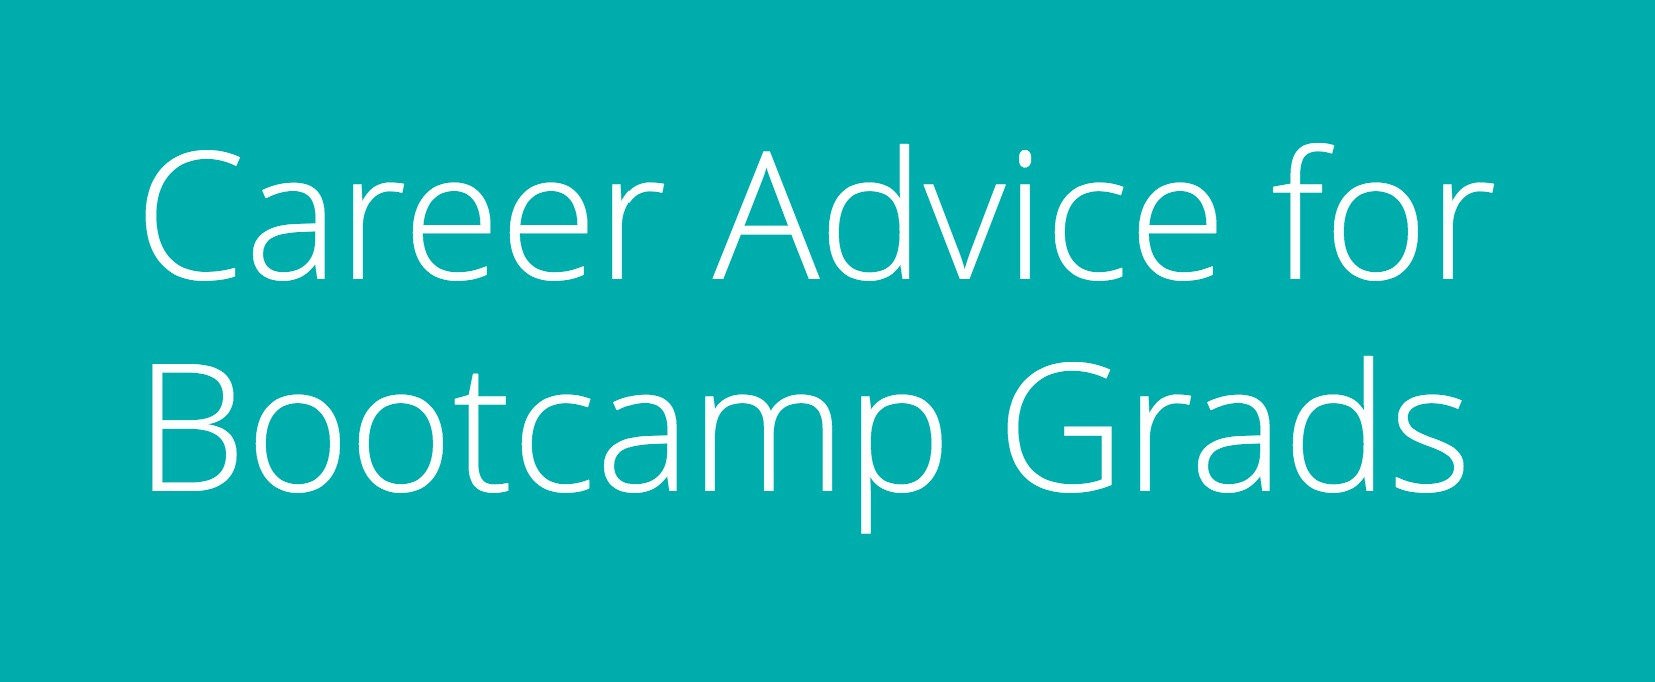 Career Advice for Bootcamp Grads Header